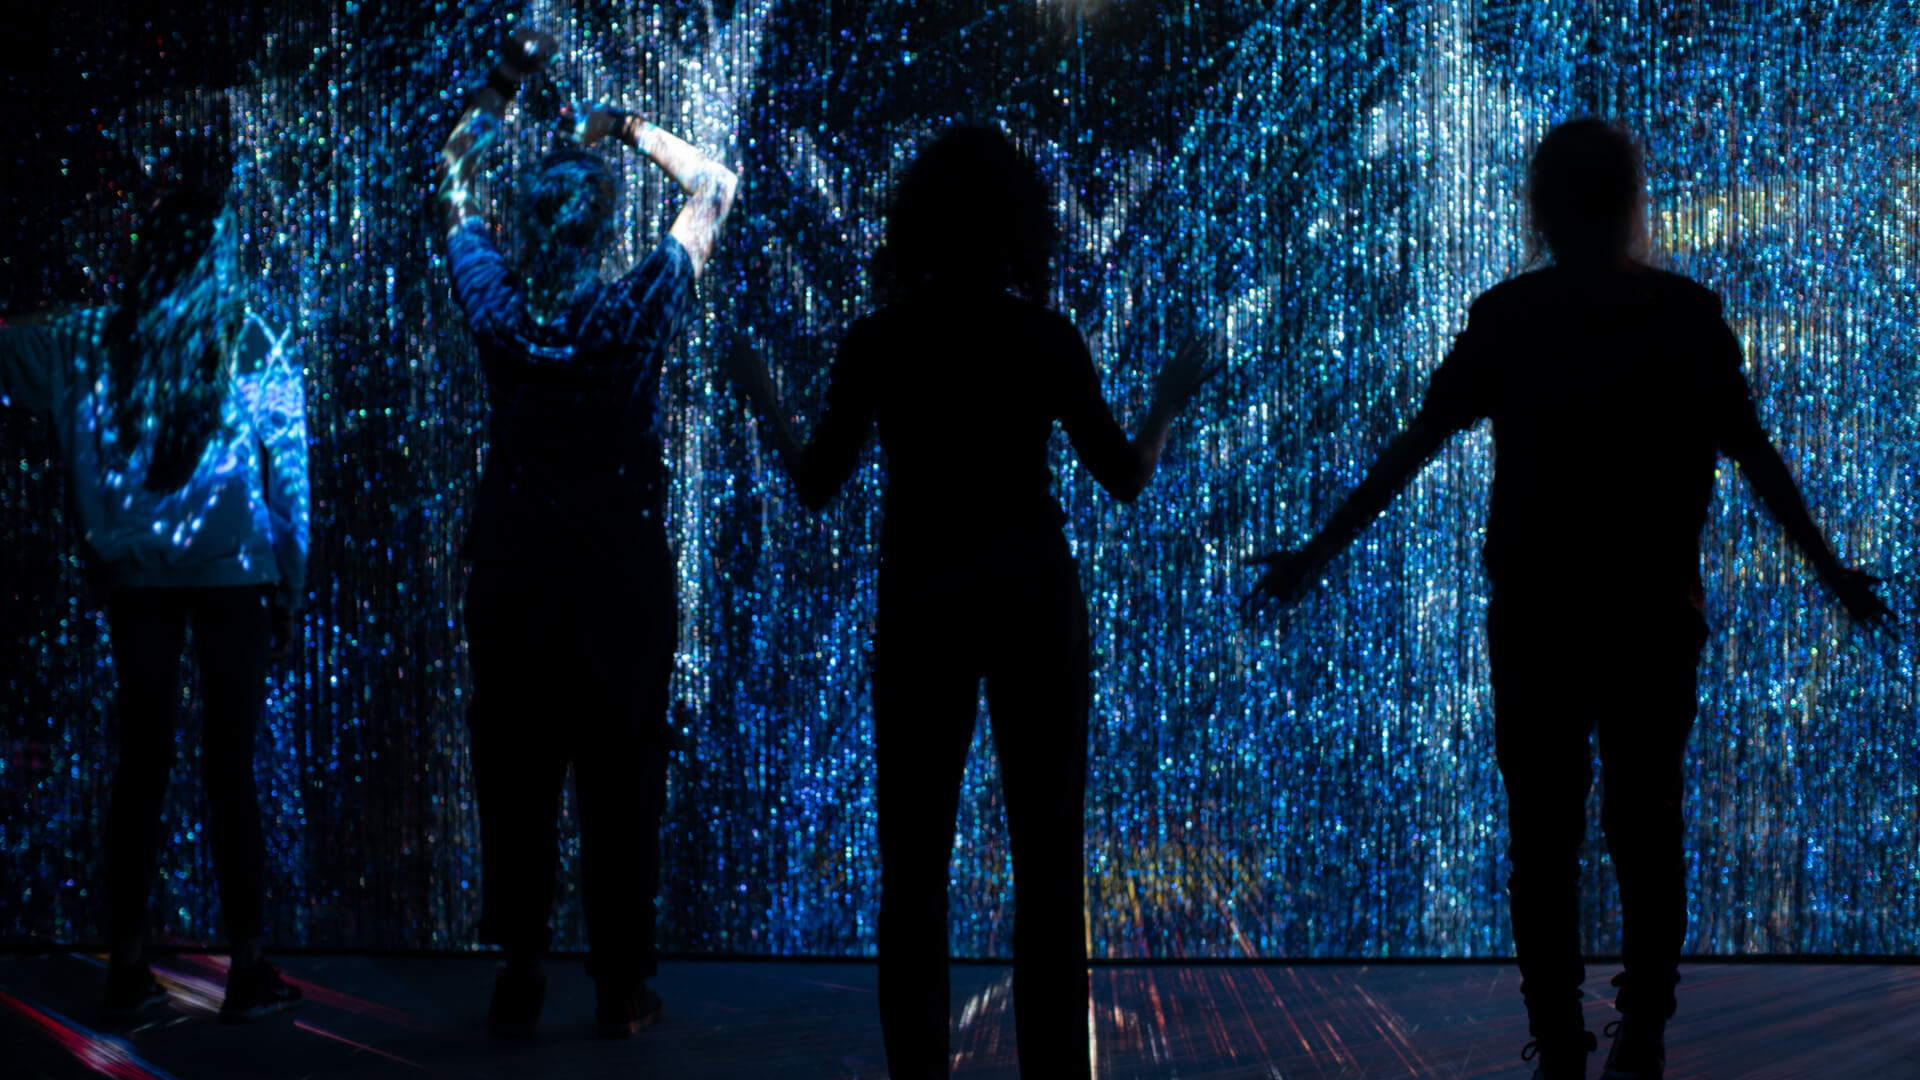 Viewers stand before the artwork and play with the AI responsive technology | We Are All Made of Light| Maja Petric | STIRworld